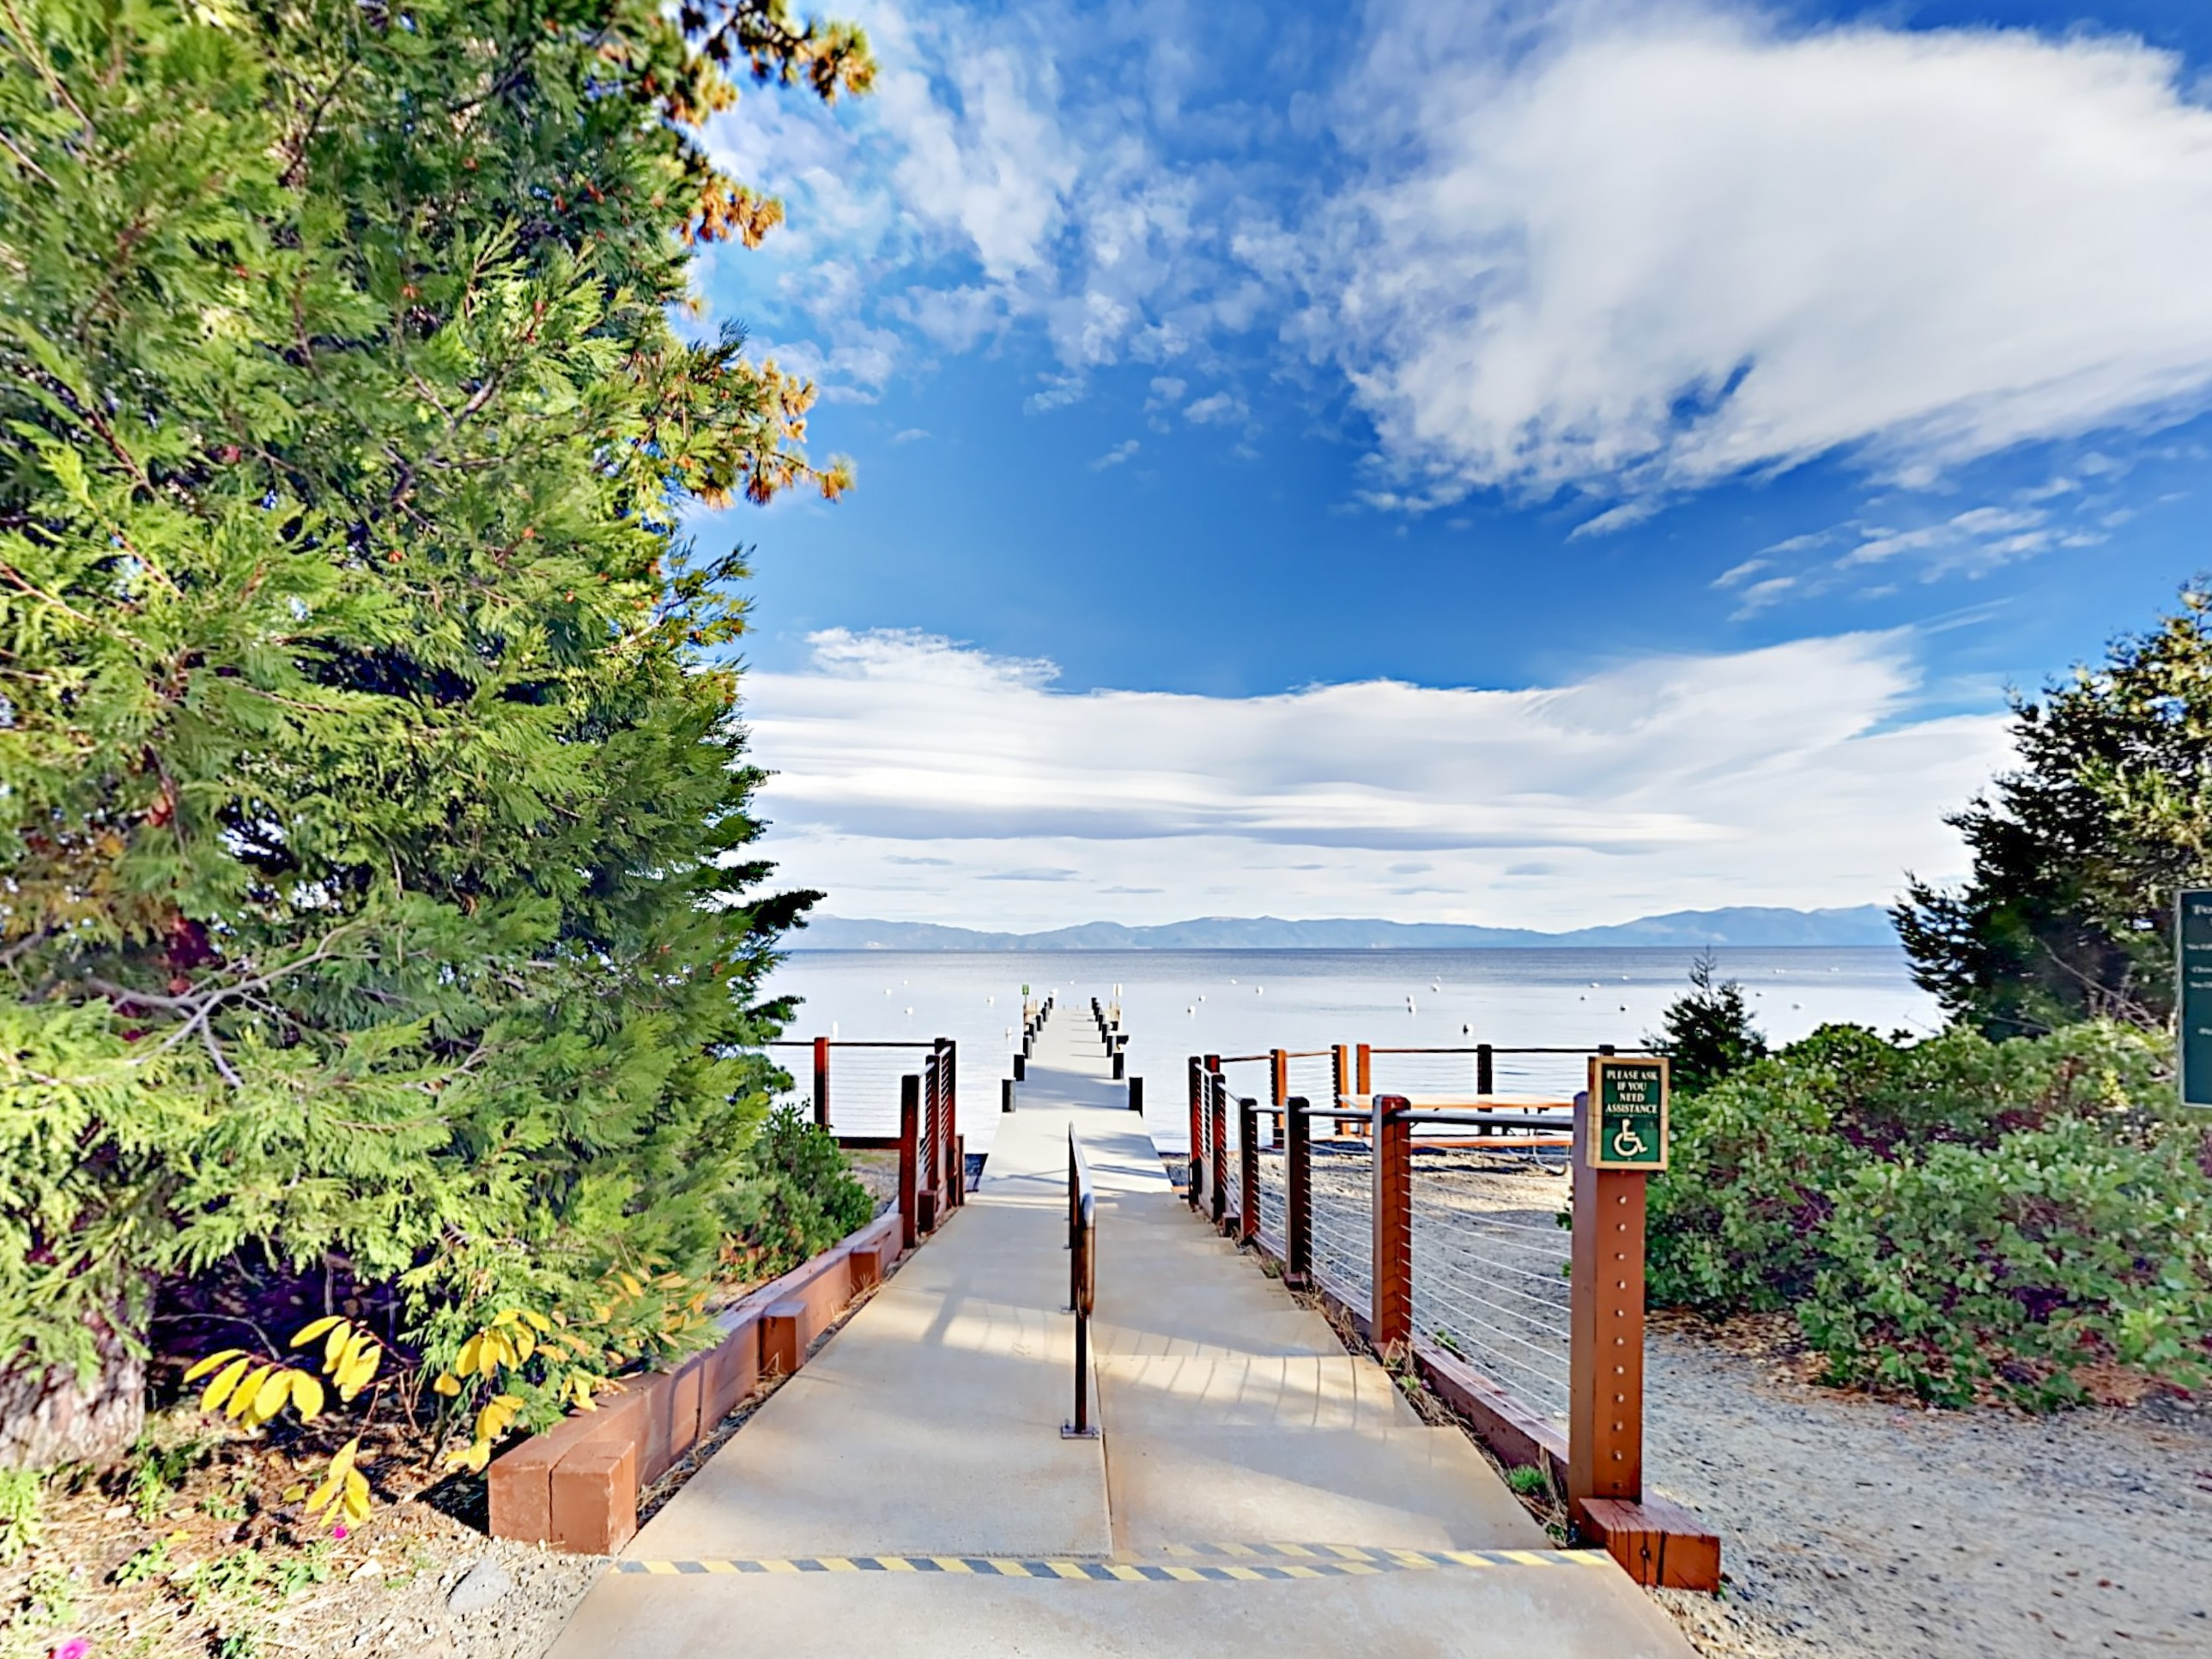 Enjoy access to 2 deepwater piers at Tahoe Park.